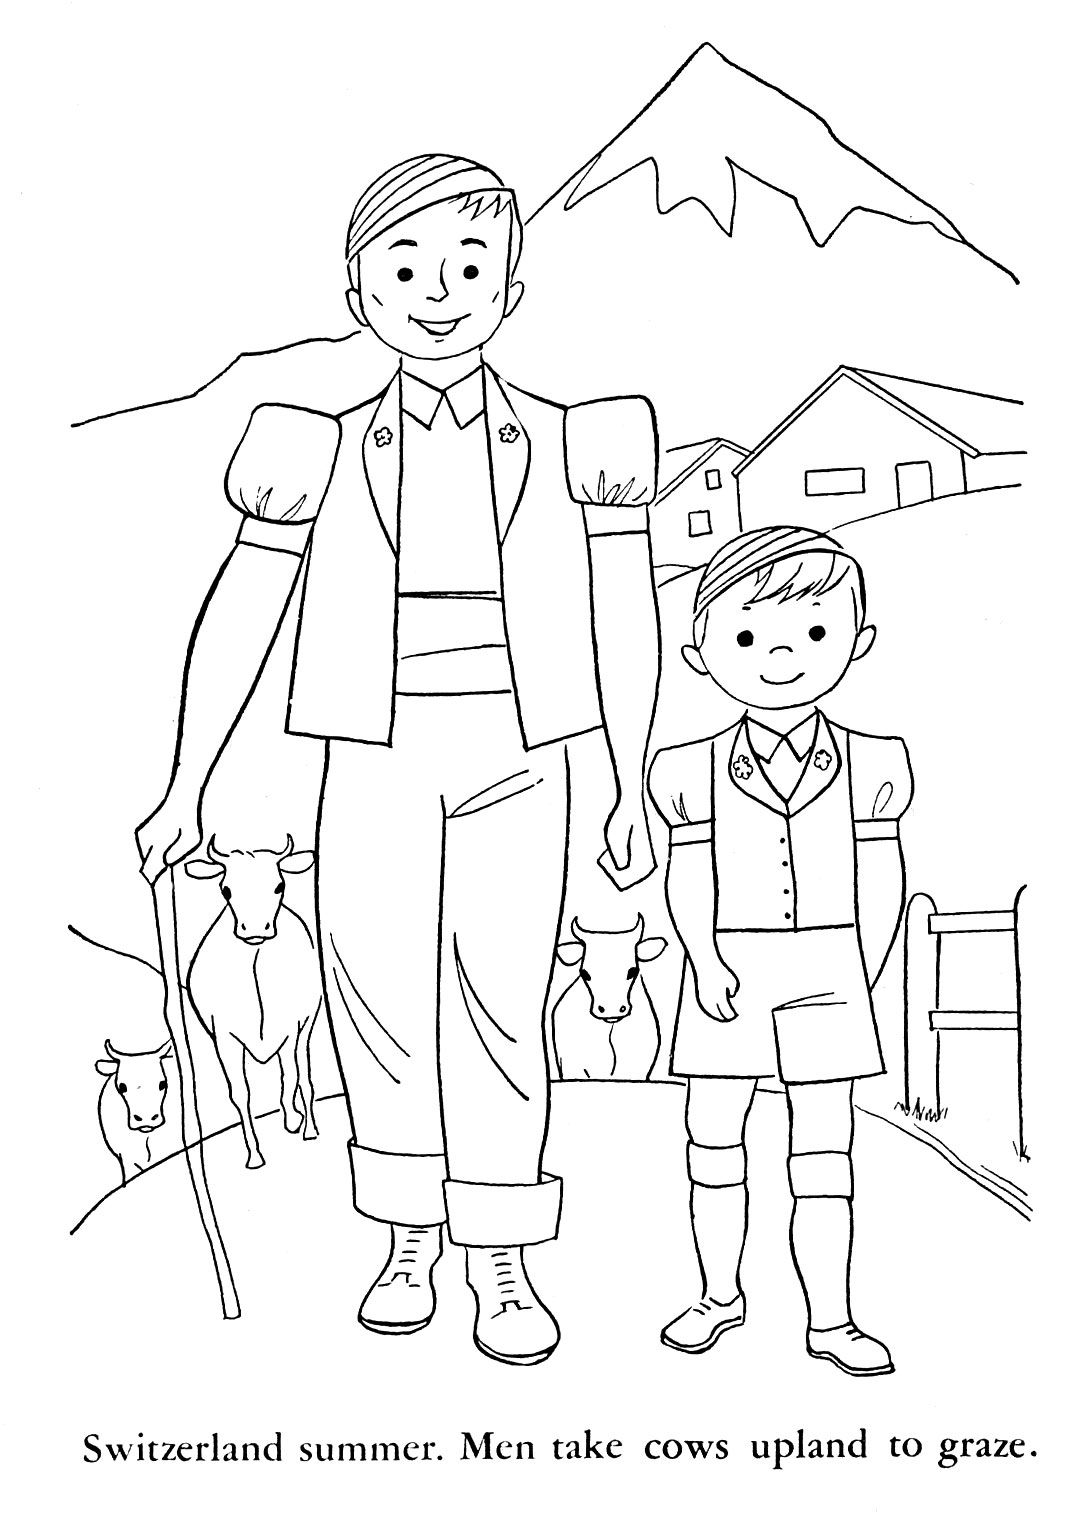 Switzerland Coloring Pages For Kids